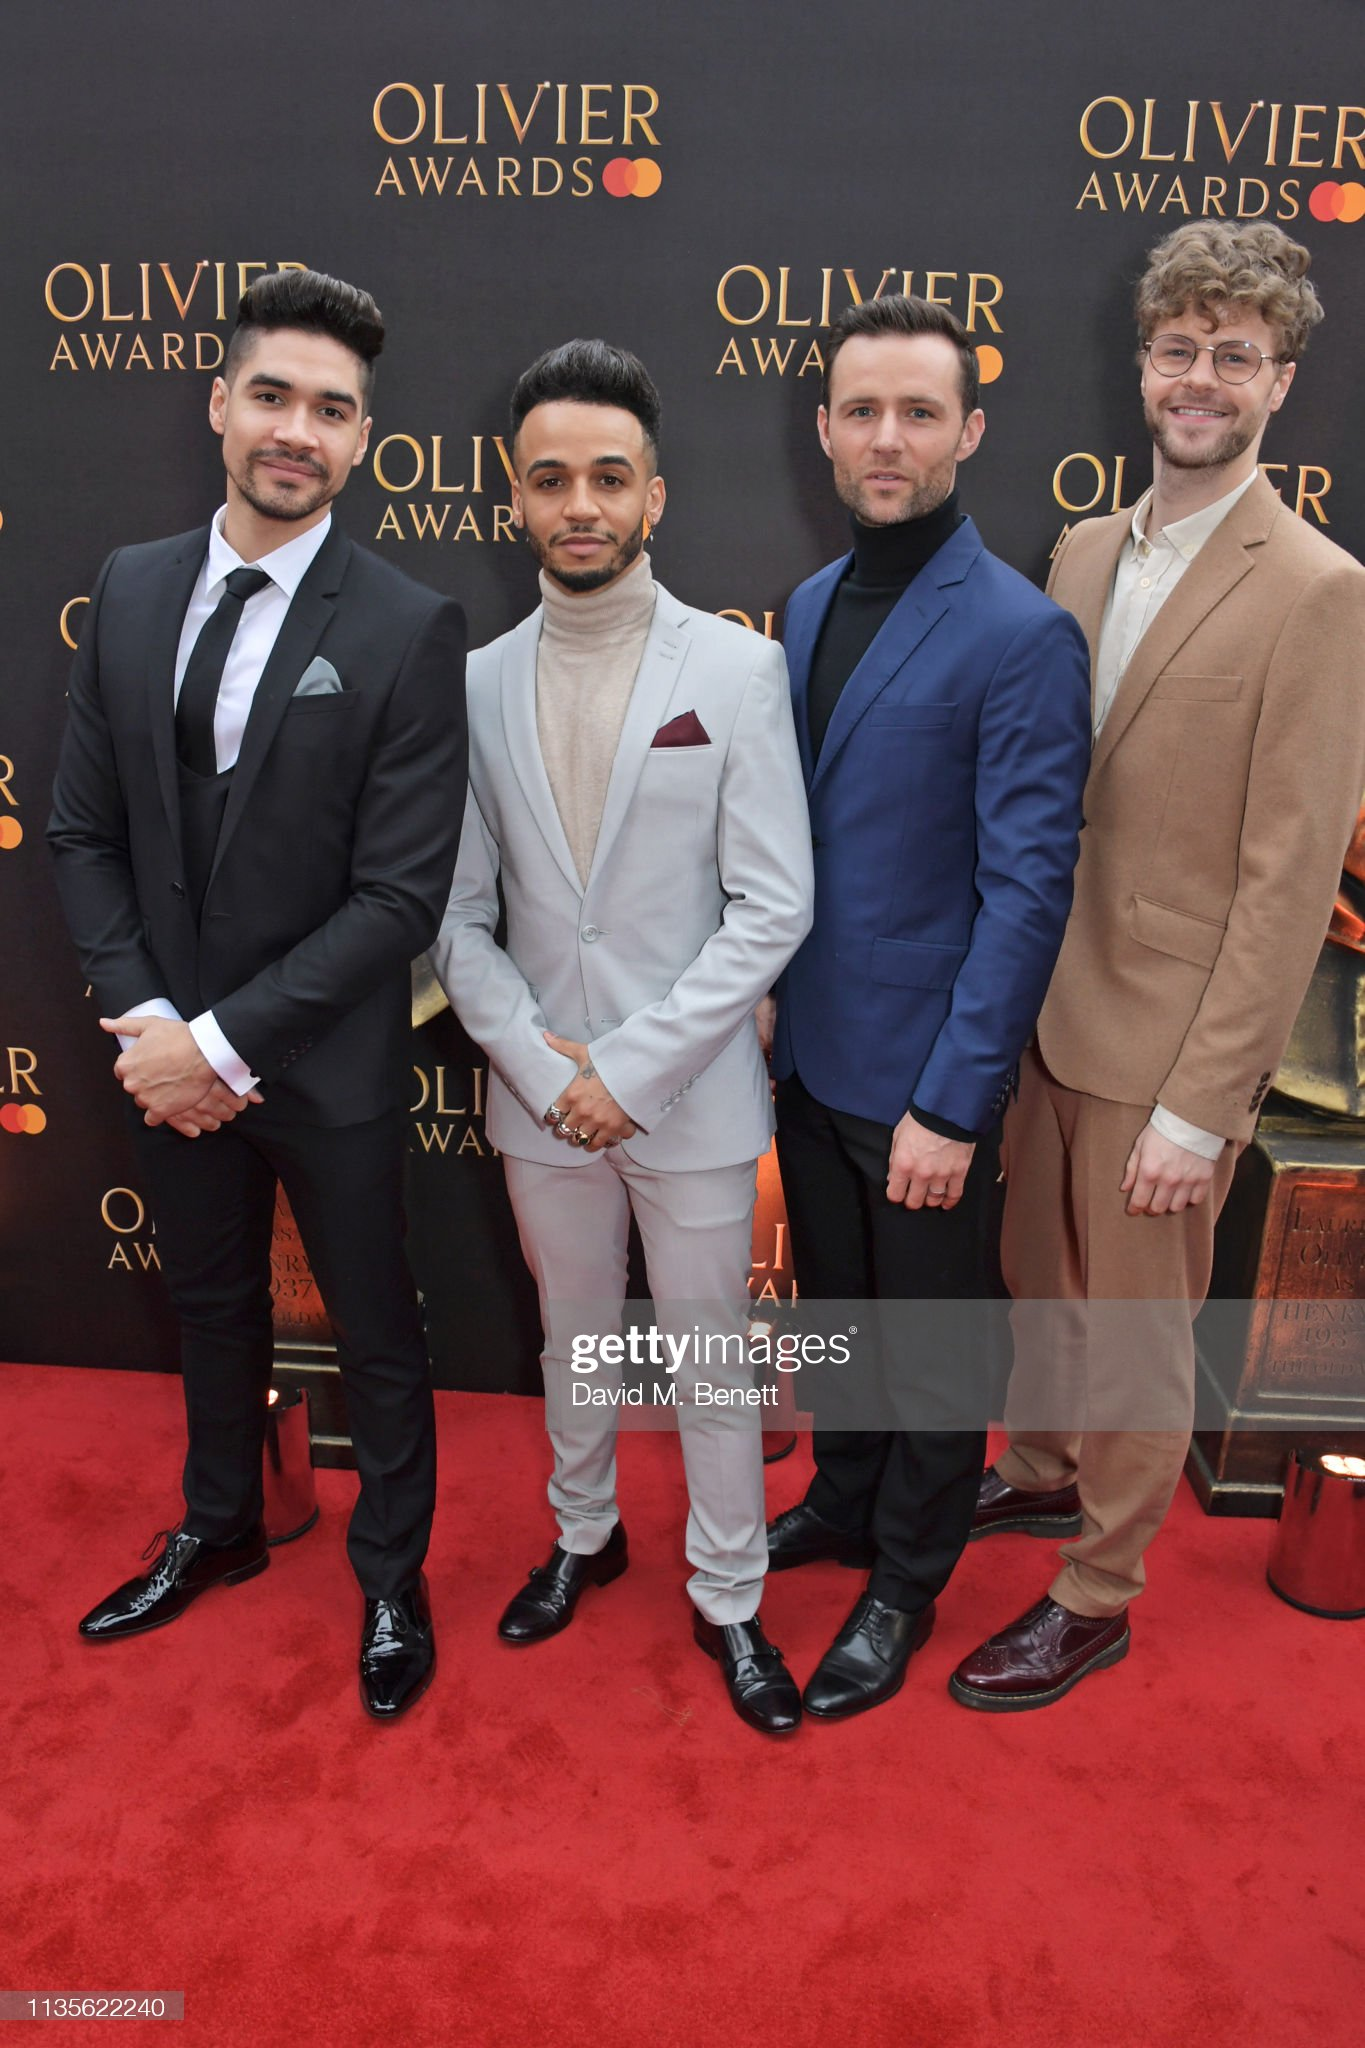 ¿Cuánto mide Harry Judd? - Altura - Real height Louis-smith-aston-merrygold-harry-judd-and-jay-mcguiness-attend-the-picture-id1135622240?s=2048x2048